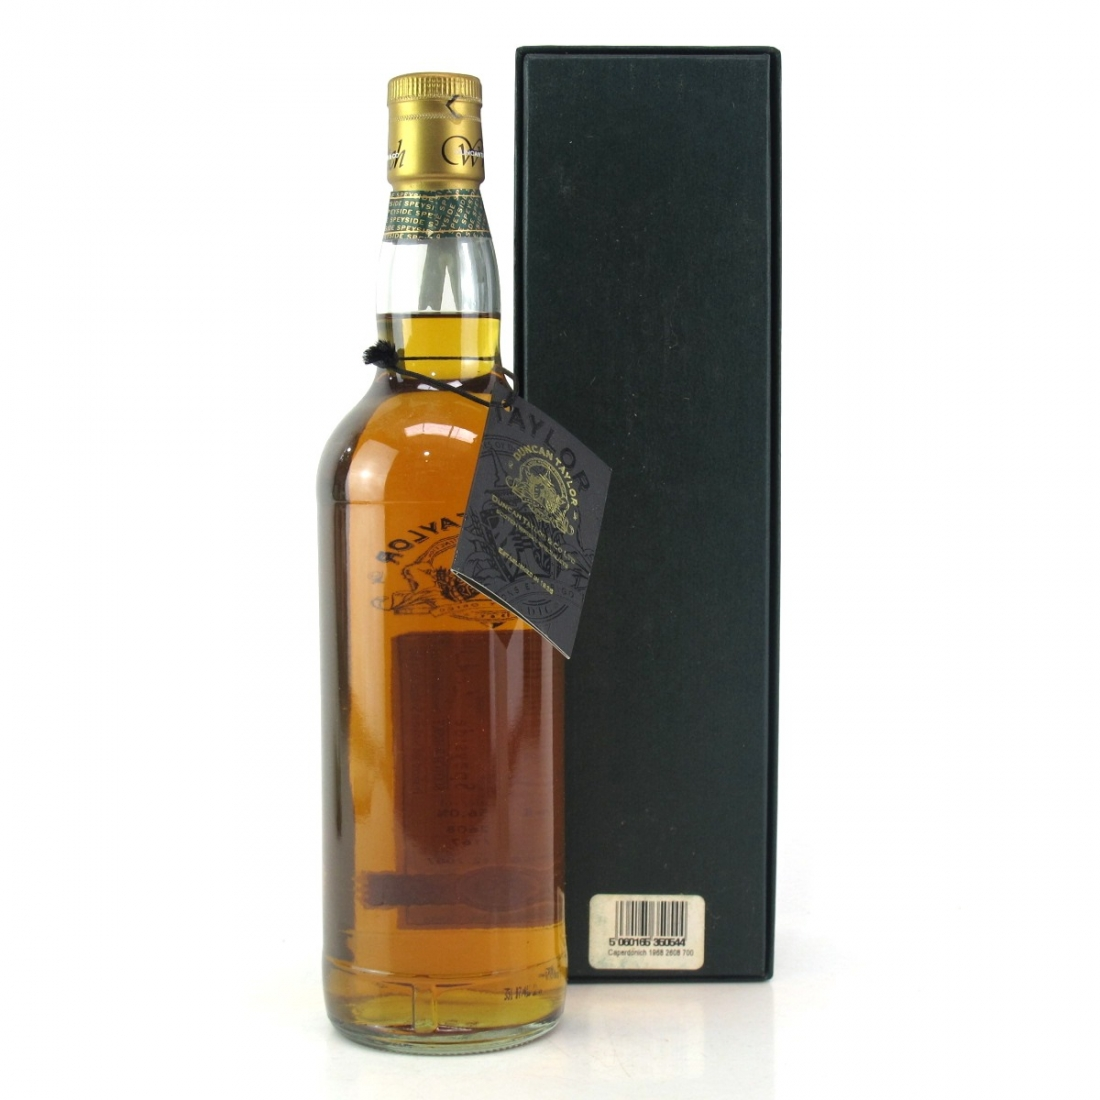 Caperdonich 1968 Duncan Taylor 39 Year Old